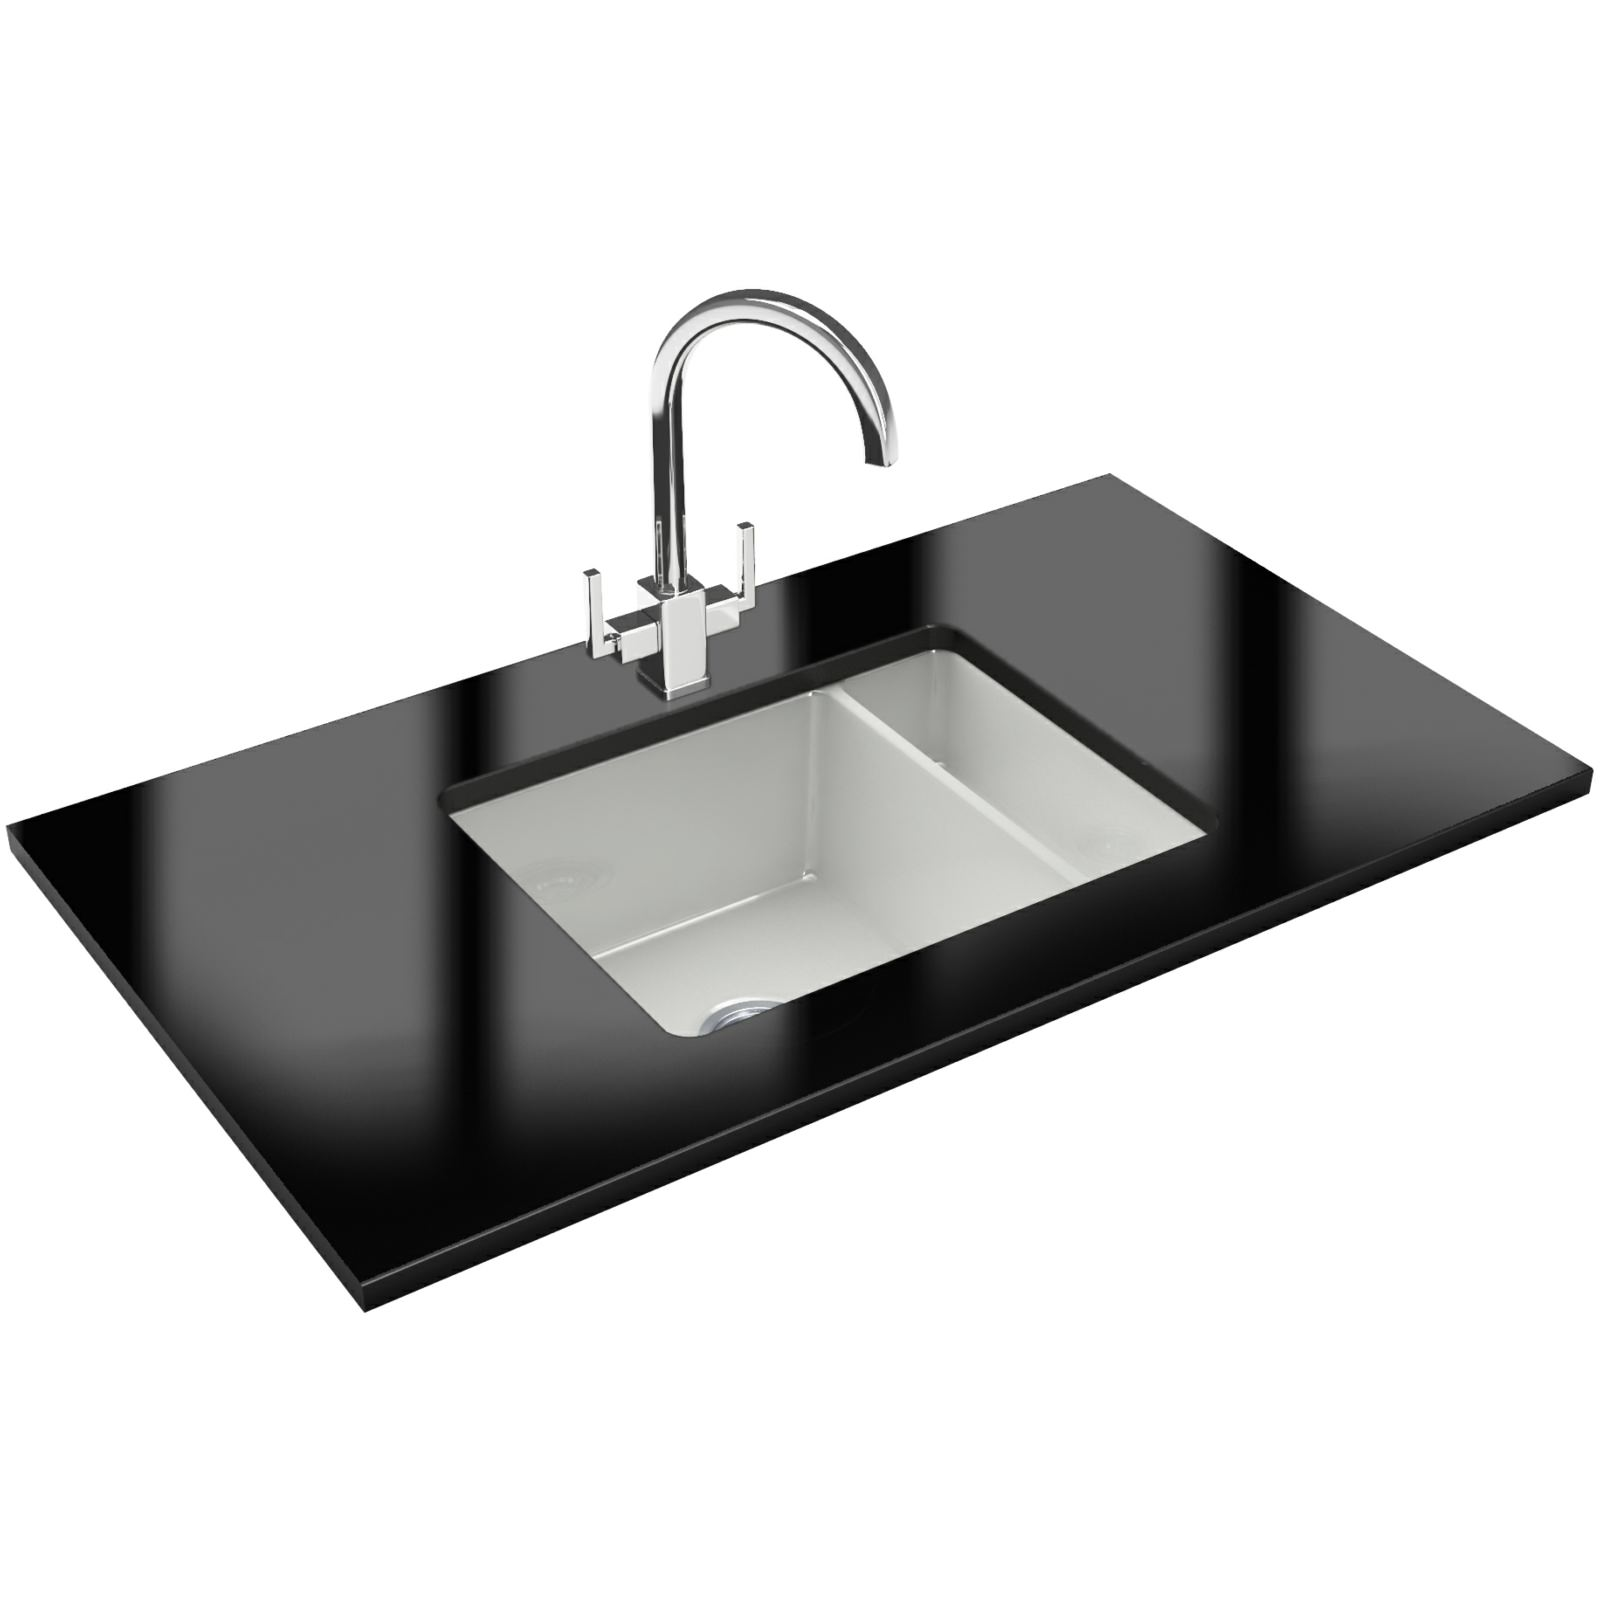 Franke kubus designer pack kbk 160 ceramic kitchen sink and tap